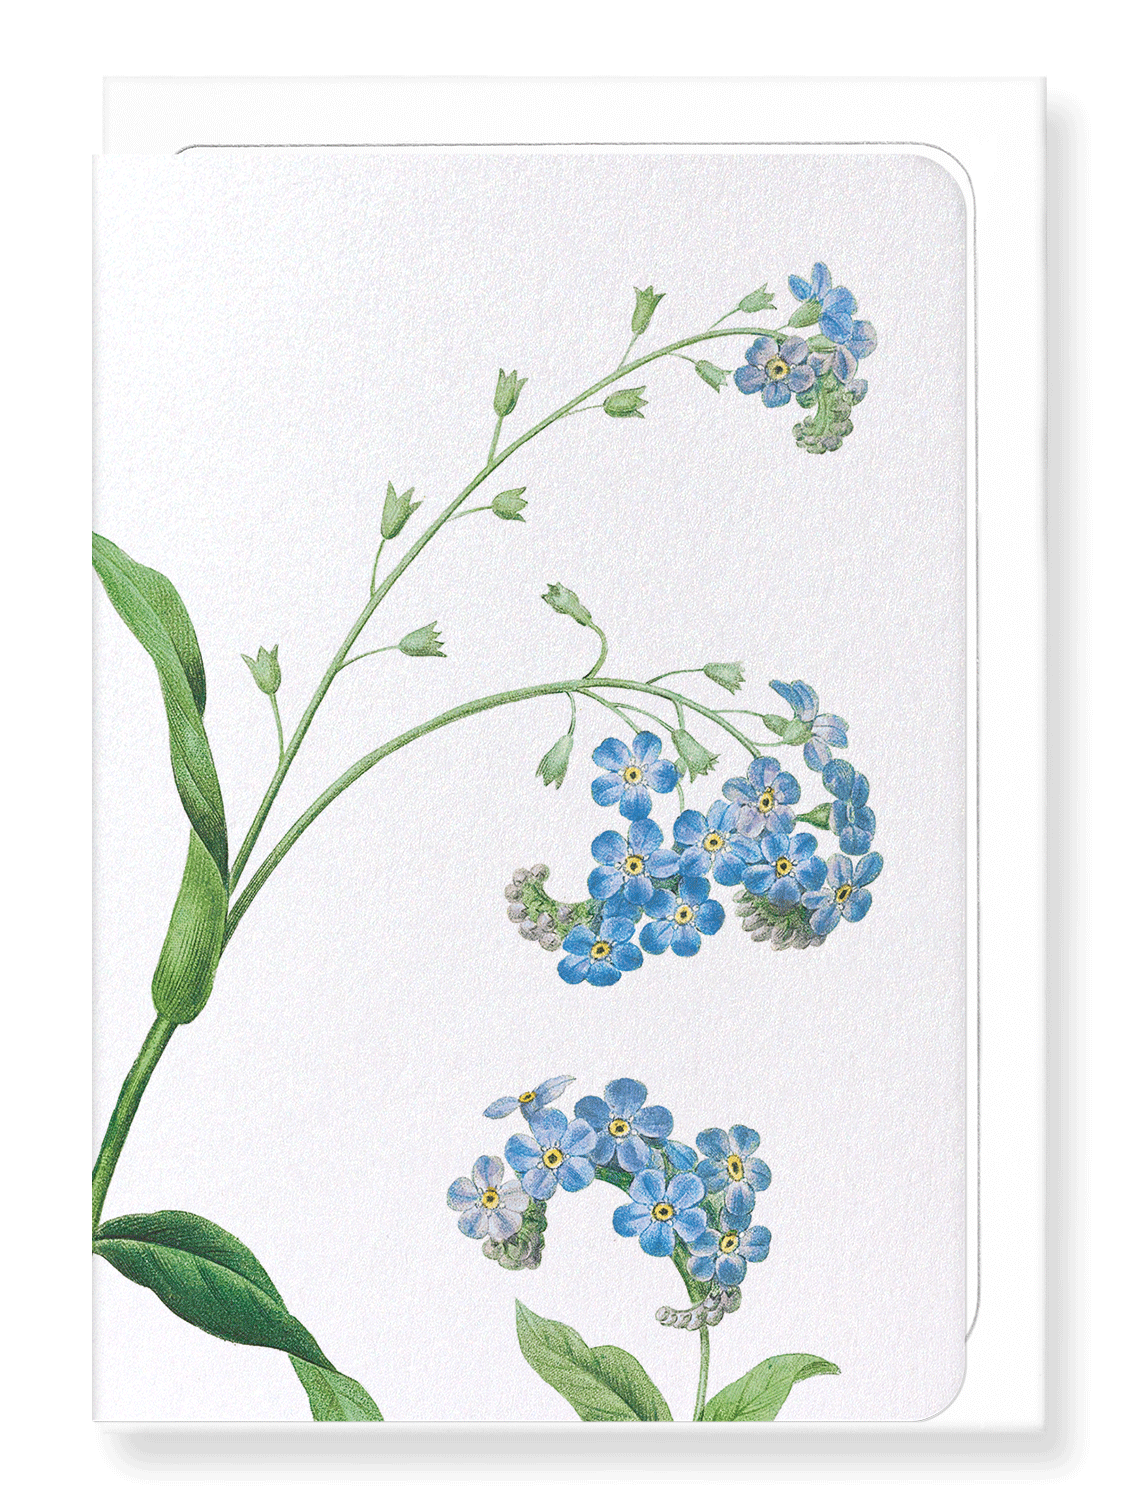 Ezen Designs - Forget me not flower (detail) - Greeting Card - Front